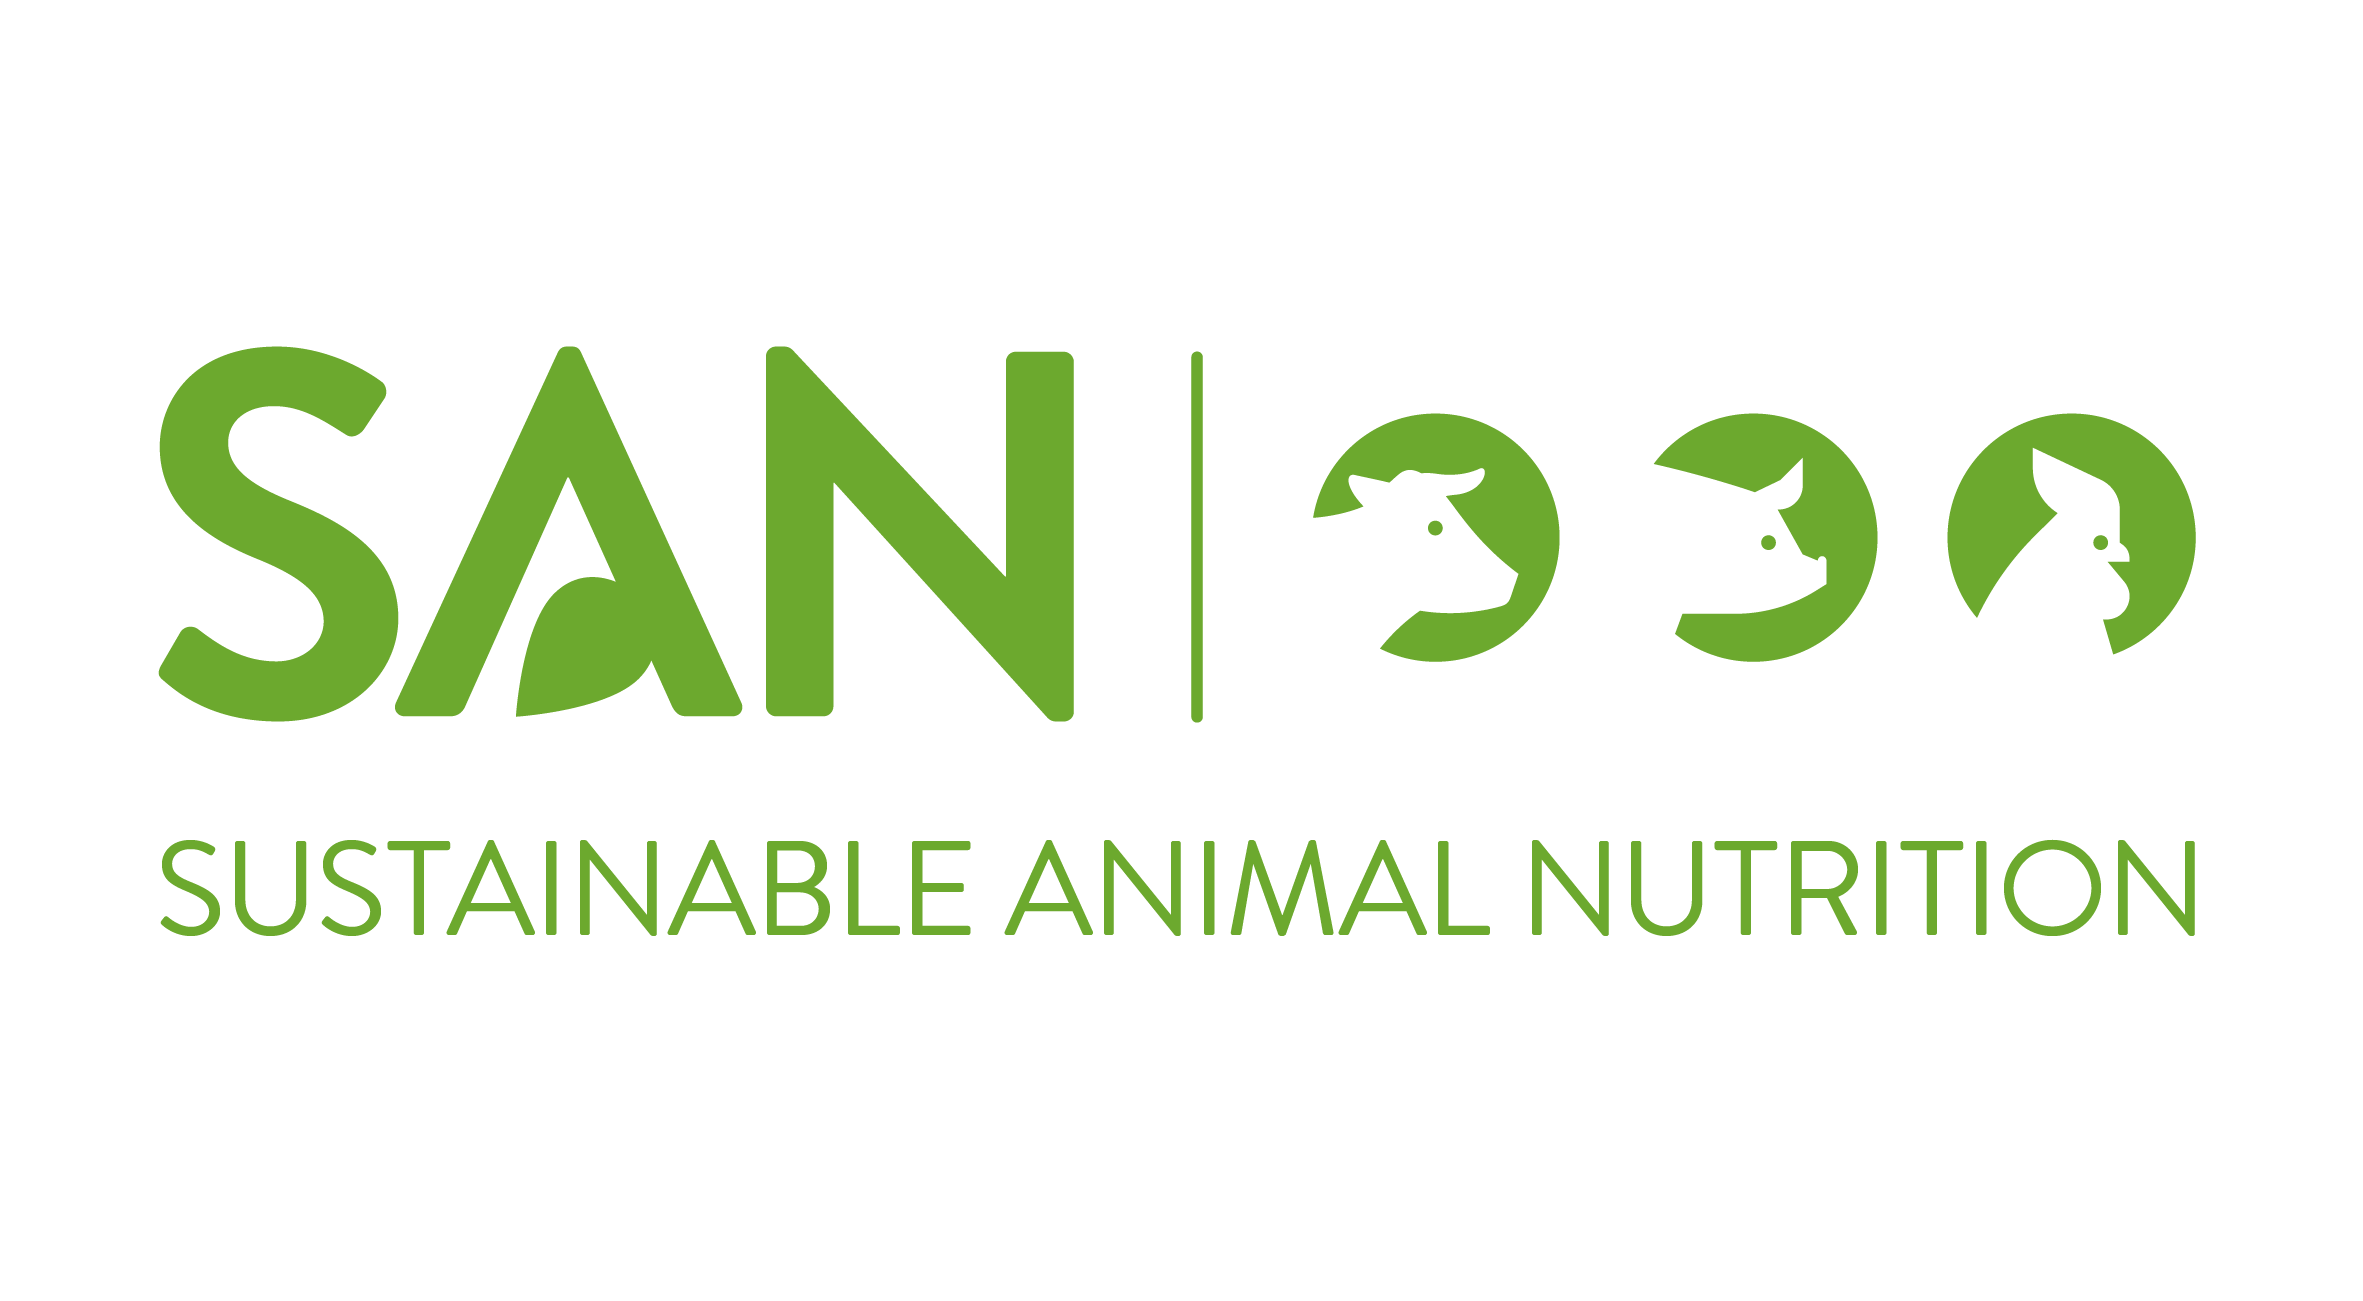 Sustainable Animal Nutrition